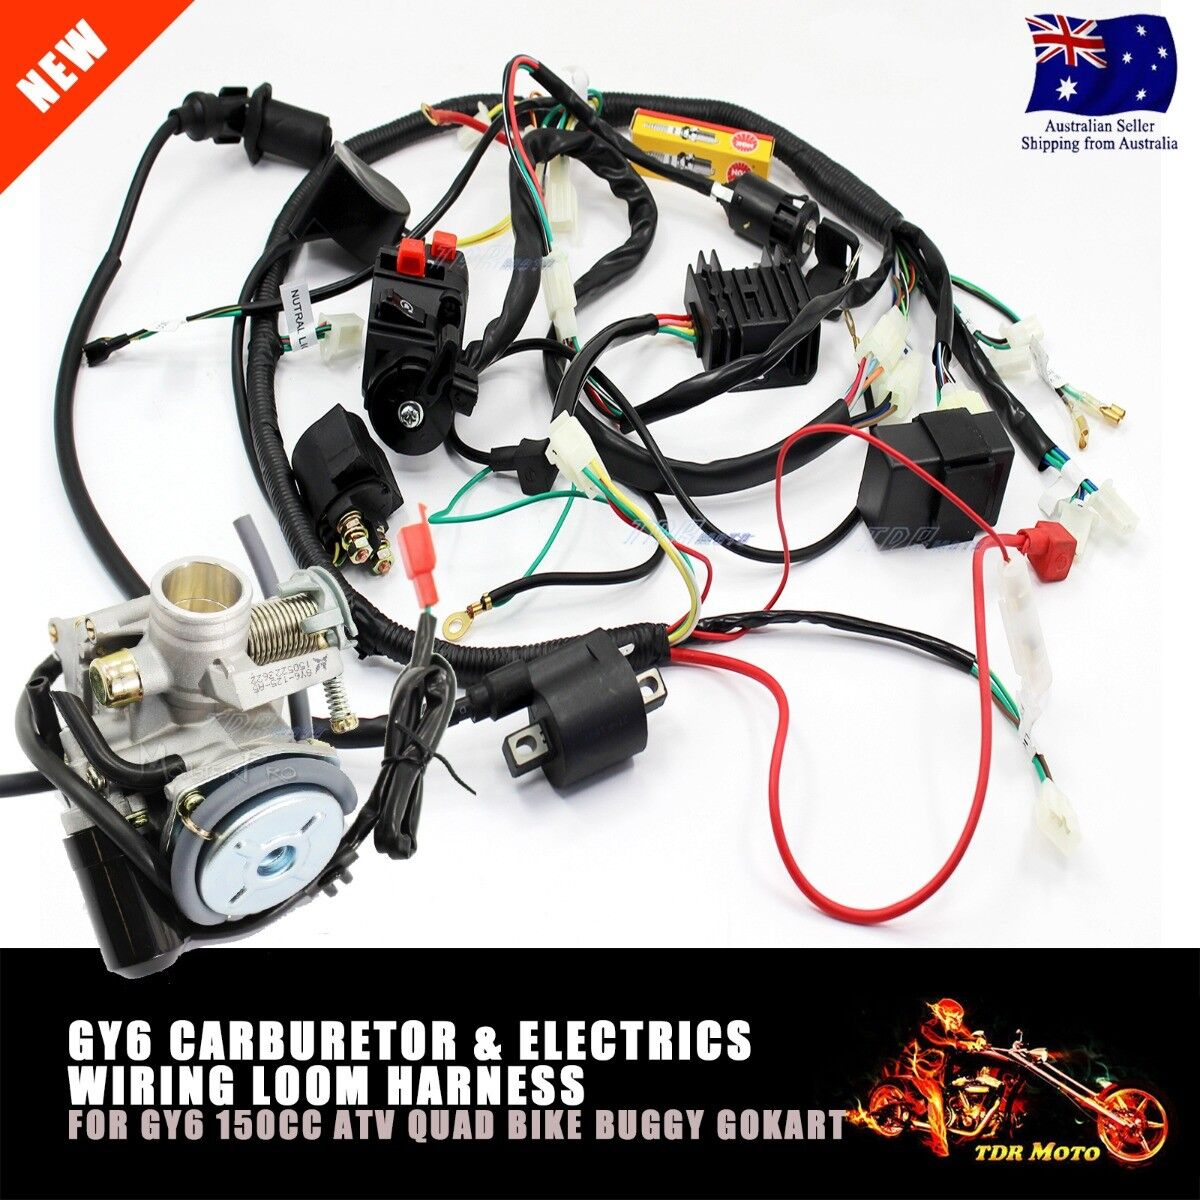 gy6 150cc carby carburetor wire loom harness solenoid coil howhit 150cc wiring harness roketa 150cc wiring harness